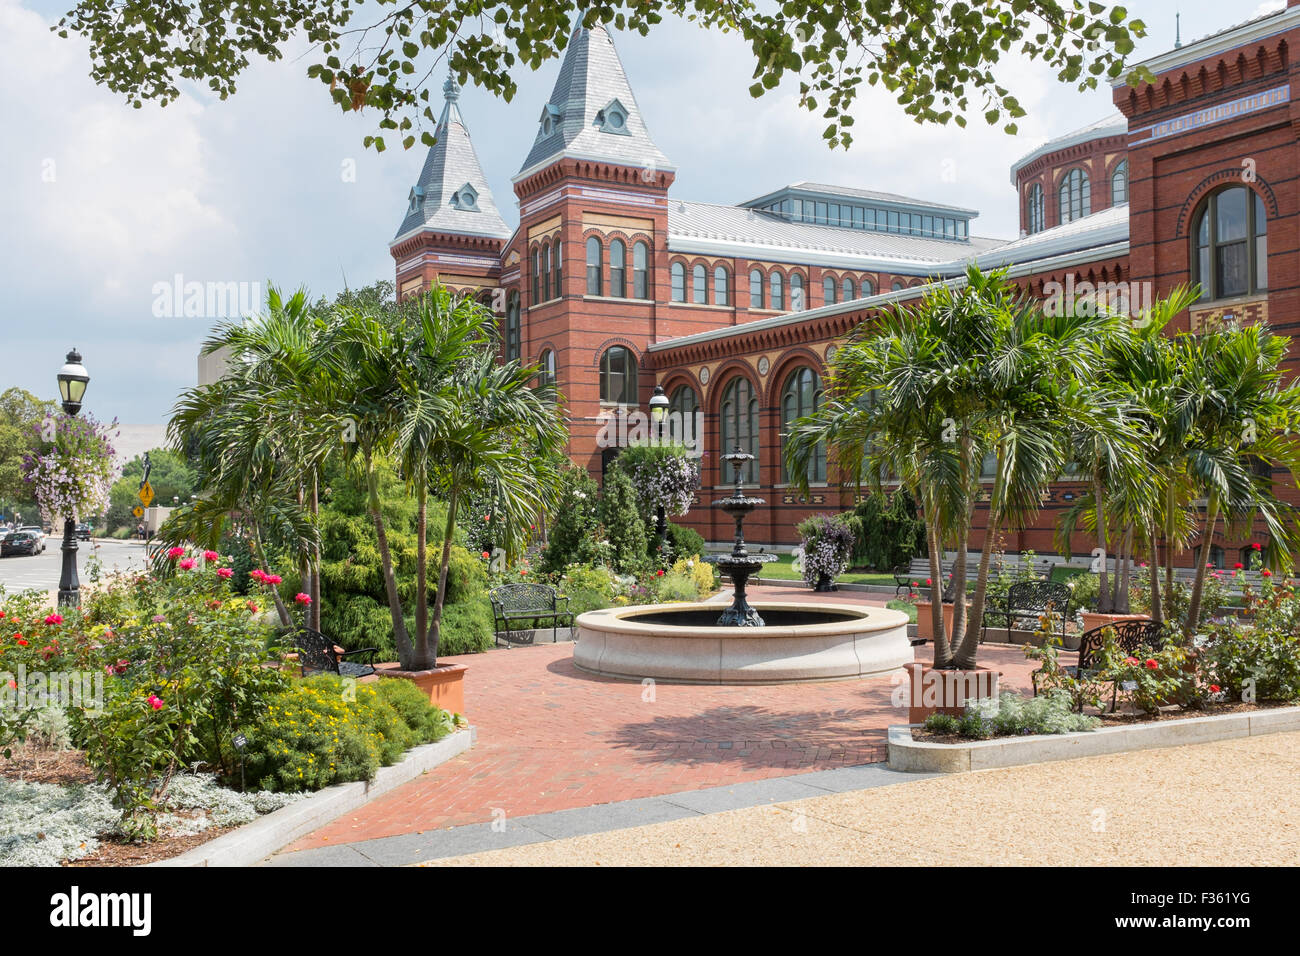 Smithsonian Arts and Industries Building on the National Mall in Washington DC, USA - Stock Image